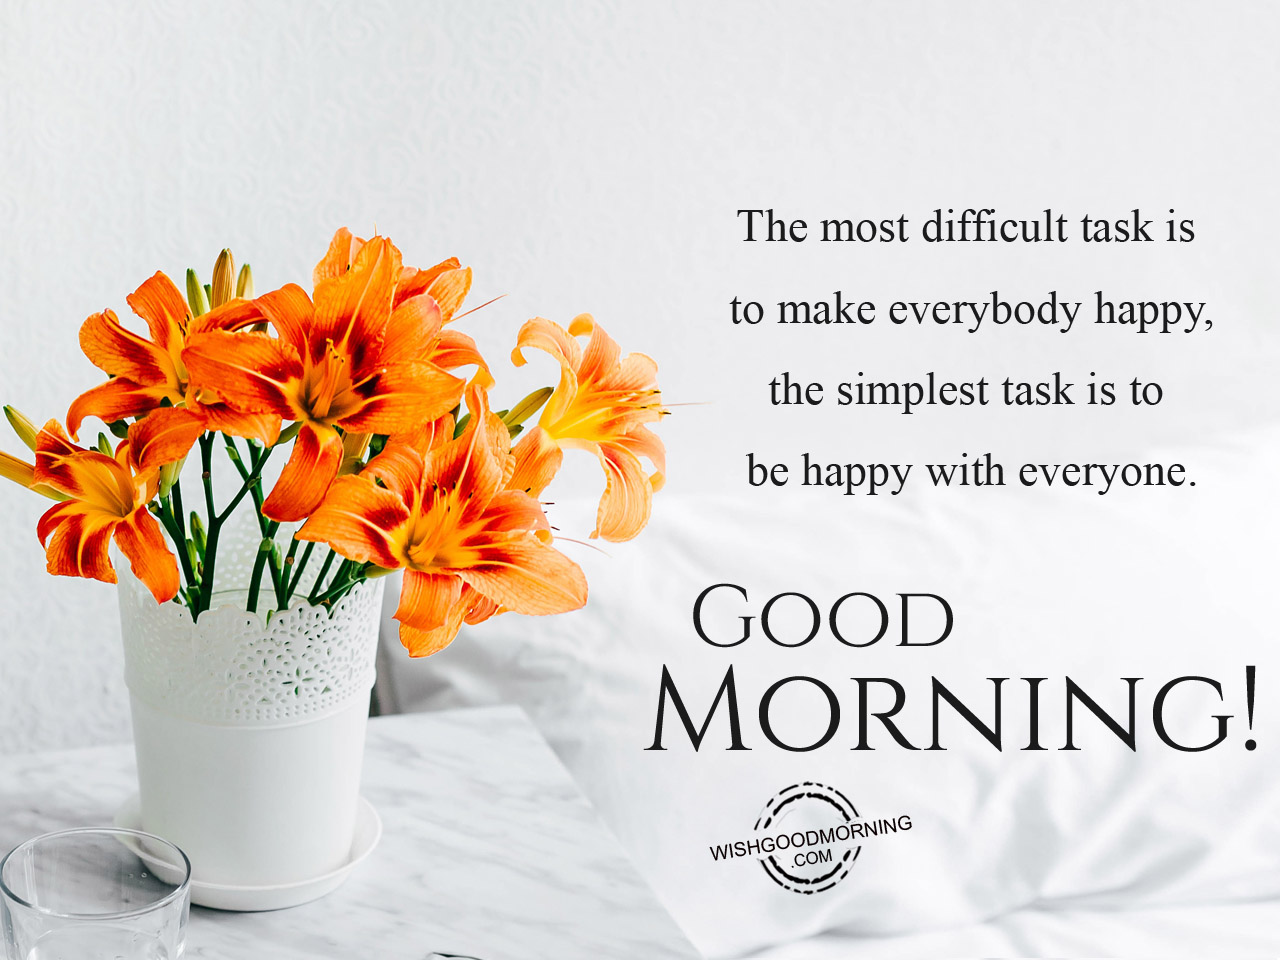 Good Morning Wishes - Good Morning Pictures – WishGoodMorning.com